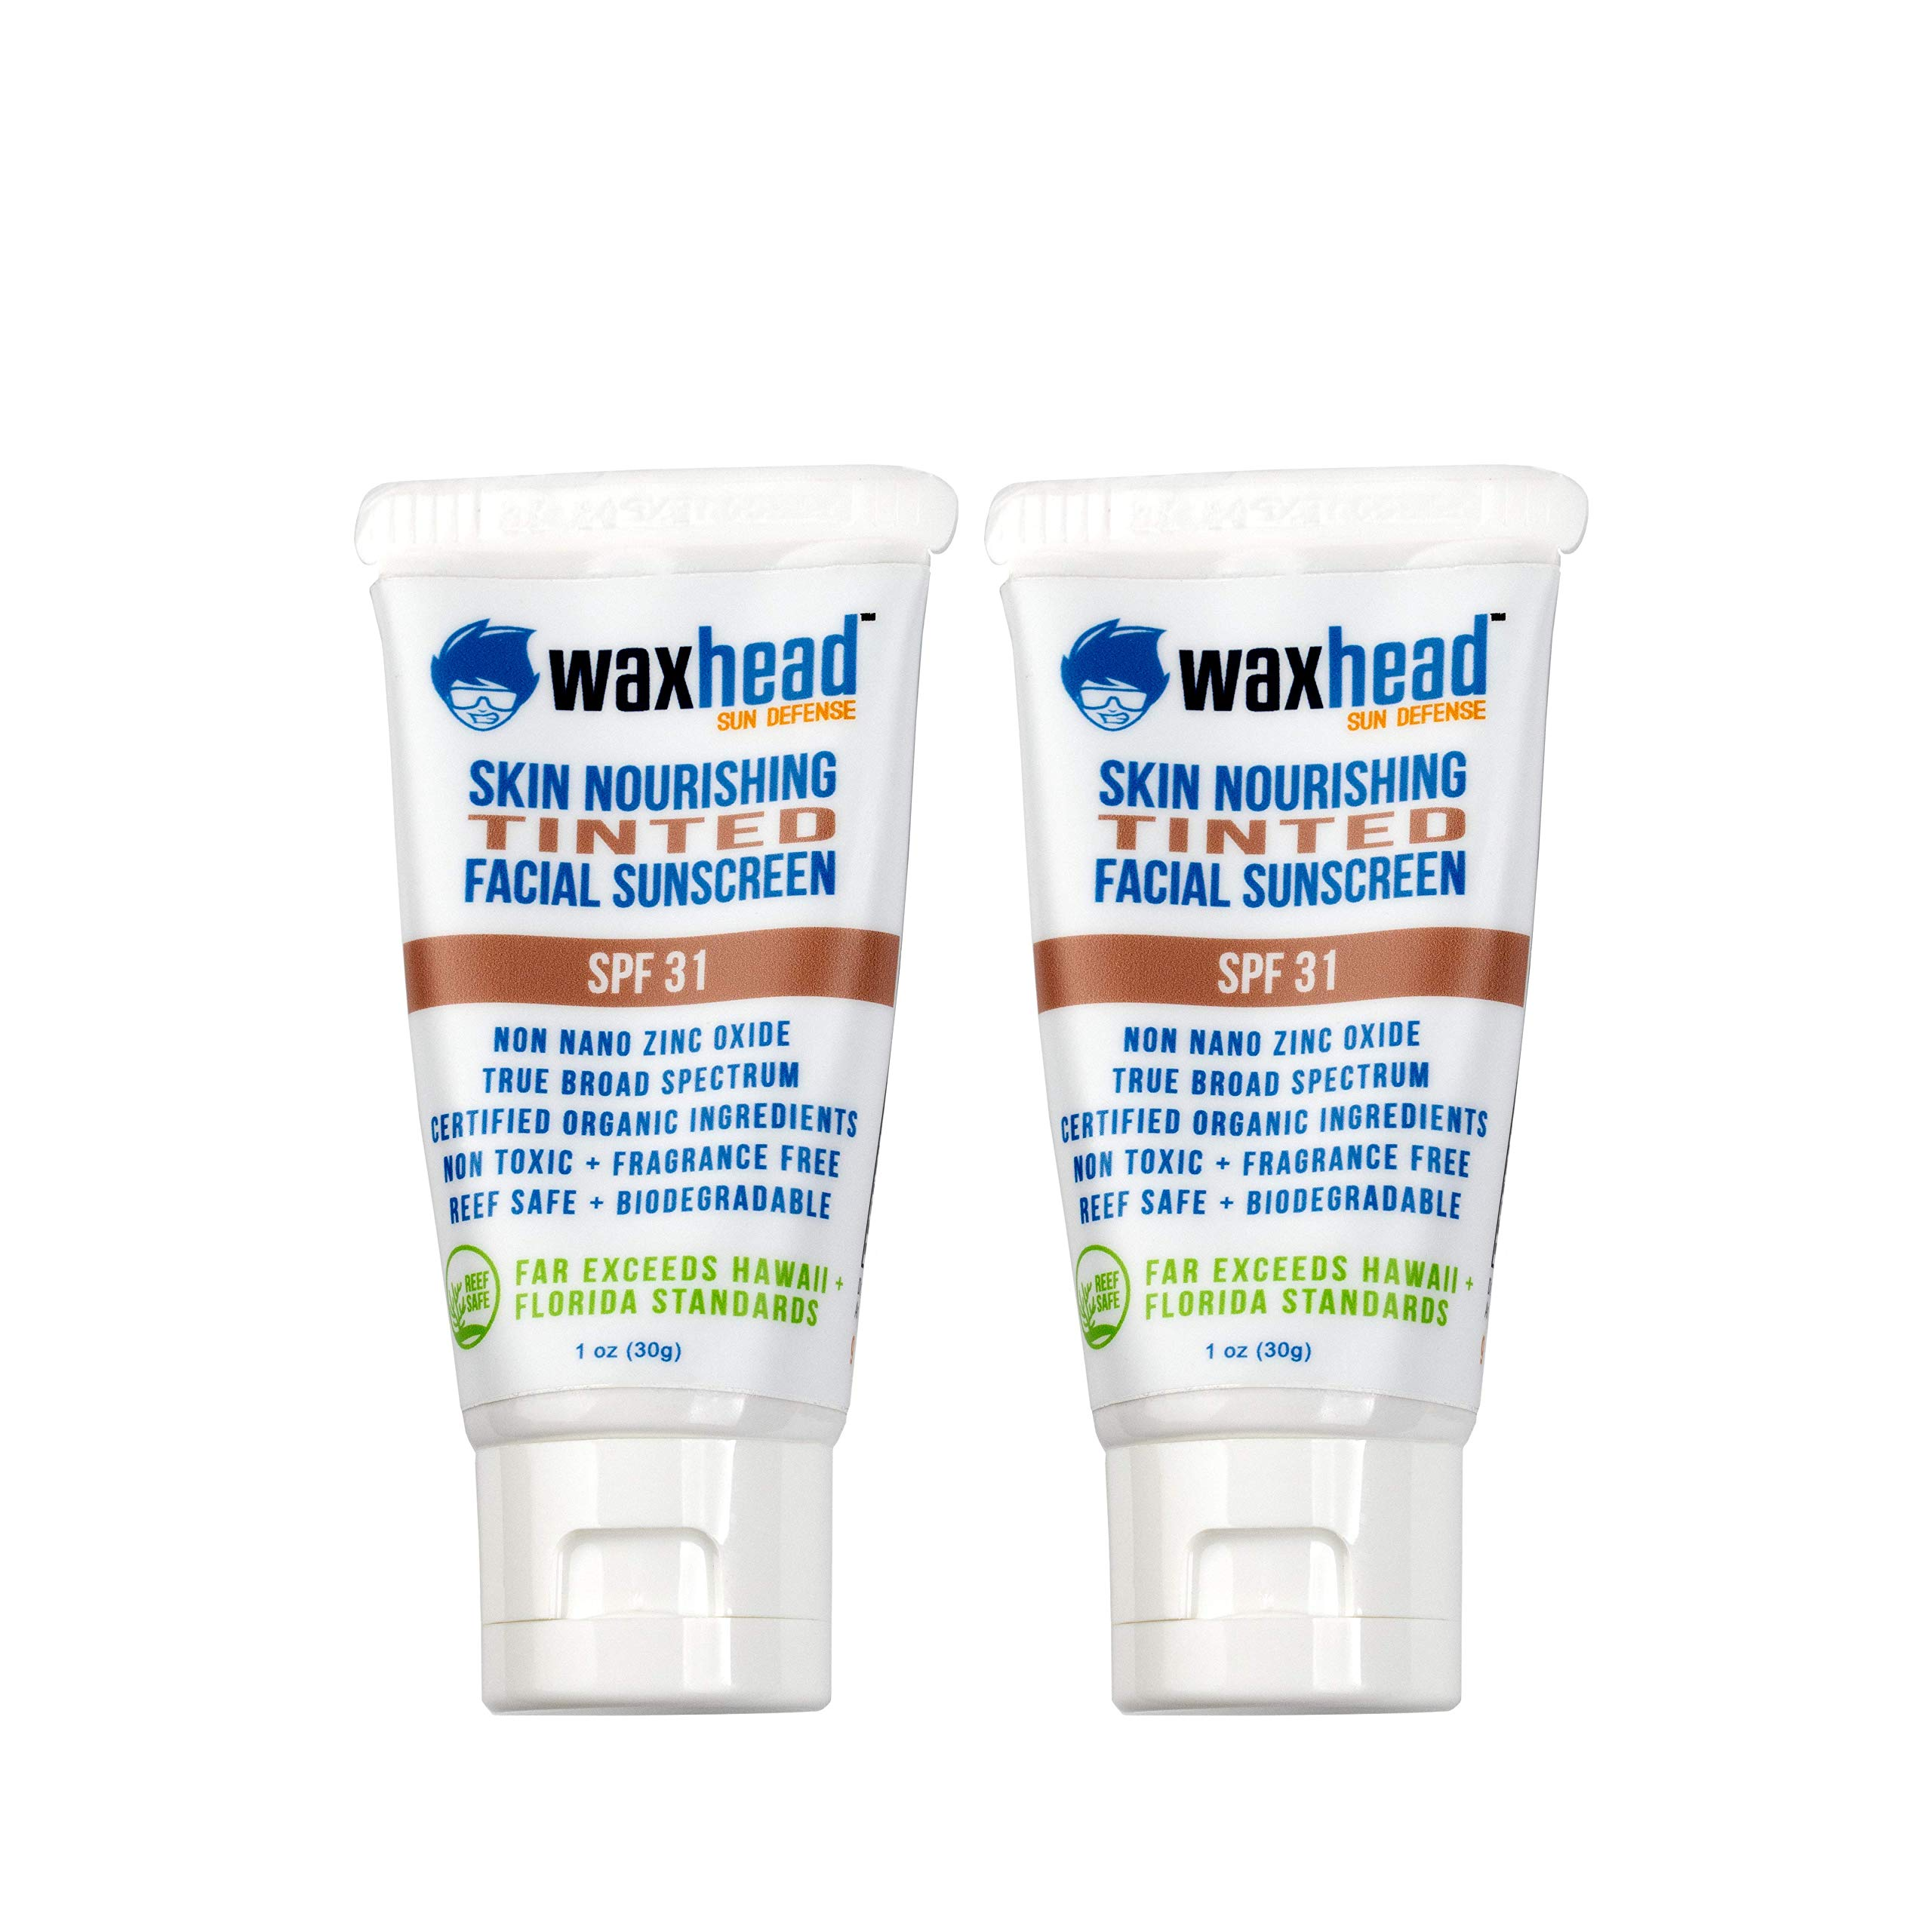 Waxhead Tinted Facial Sunscreen - Non-Toxic, Safe, Non-nano Zinc Oxide, Natural Mineral, Anti-aging Lotion, SPF 31 (1oz, 2-pack, Light to Medium skin)